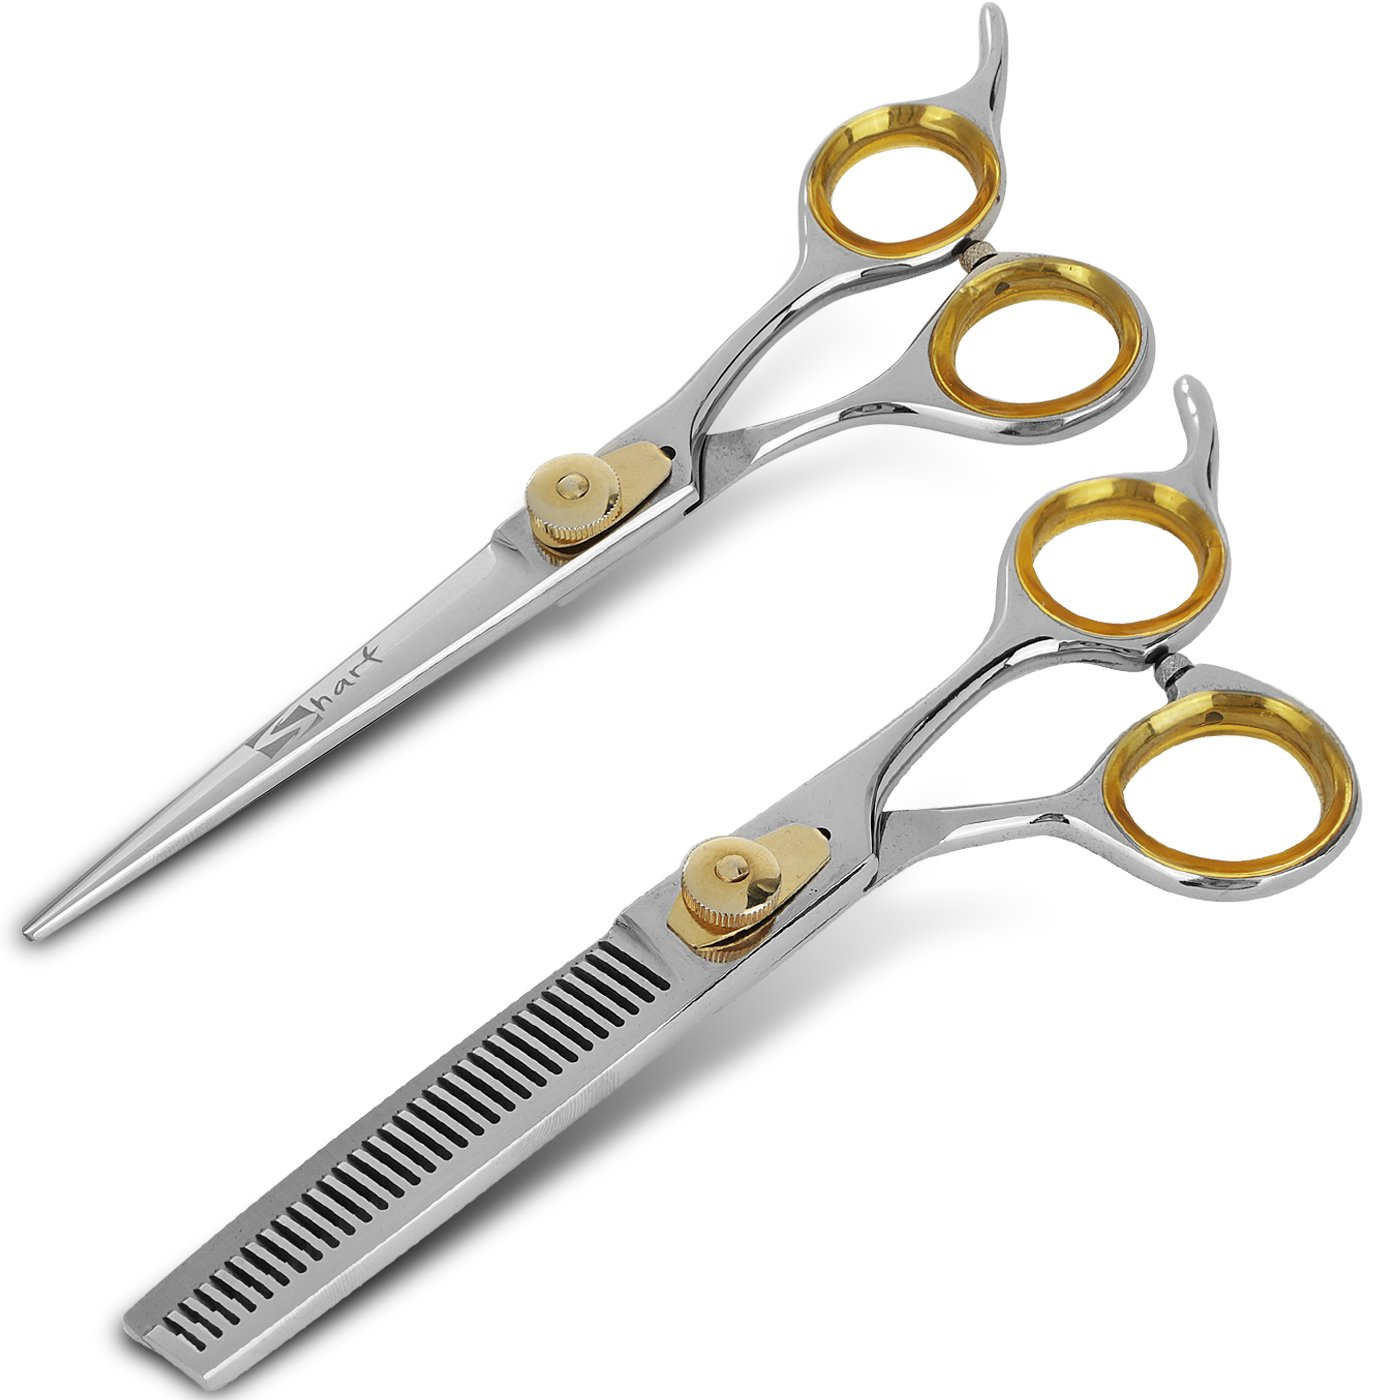 SHARF 6.5'' Stainless Steel Barber Scissors + 6.5'' Thinning Shears For Men & Women | Gold Touch Series 30-Teeth Hair Cutting/Texturizing Scissors w/Easy Grip Handles | Great For Hairdresser & Home Use by Sharf